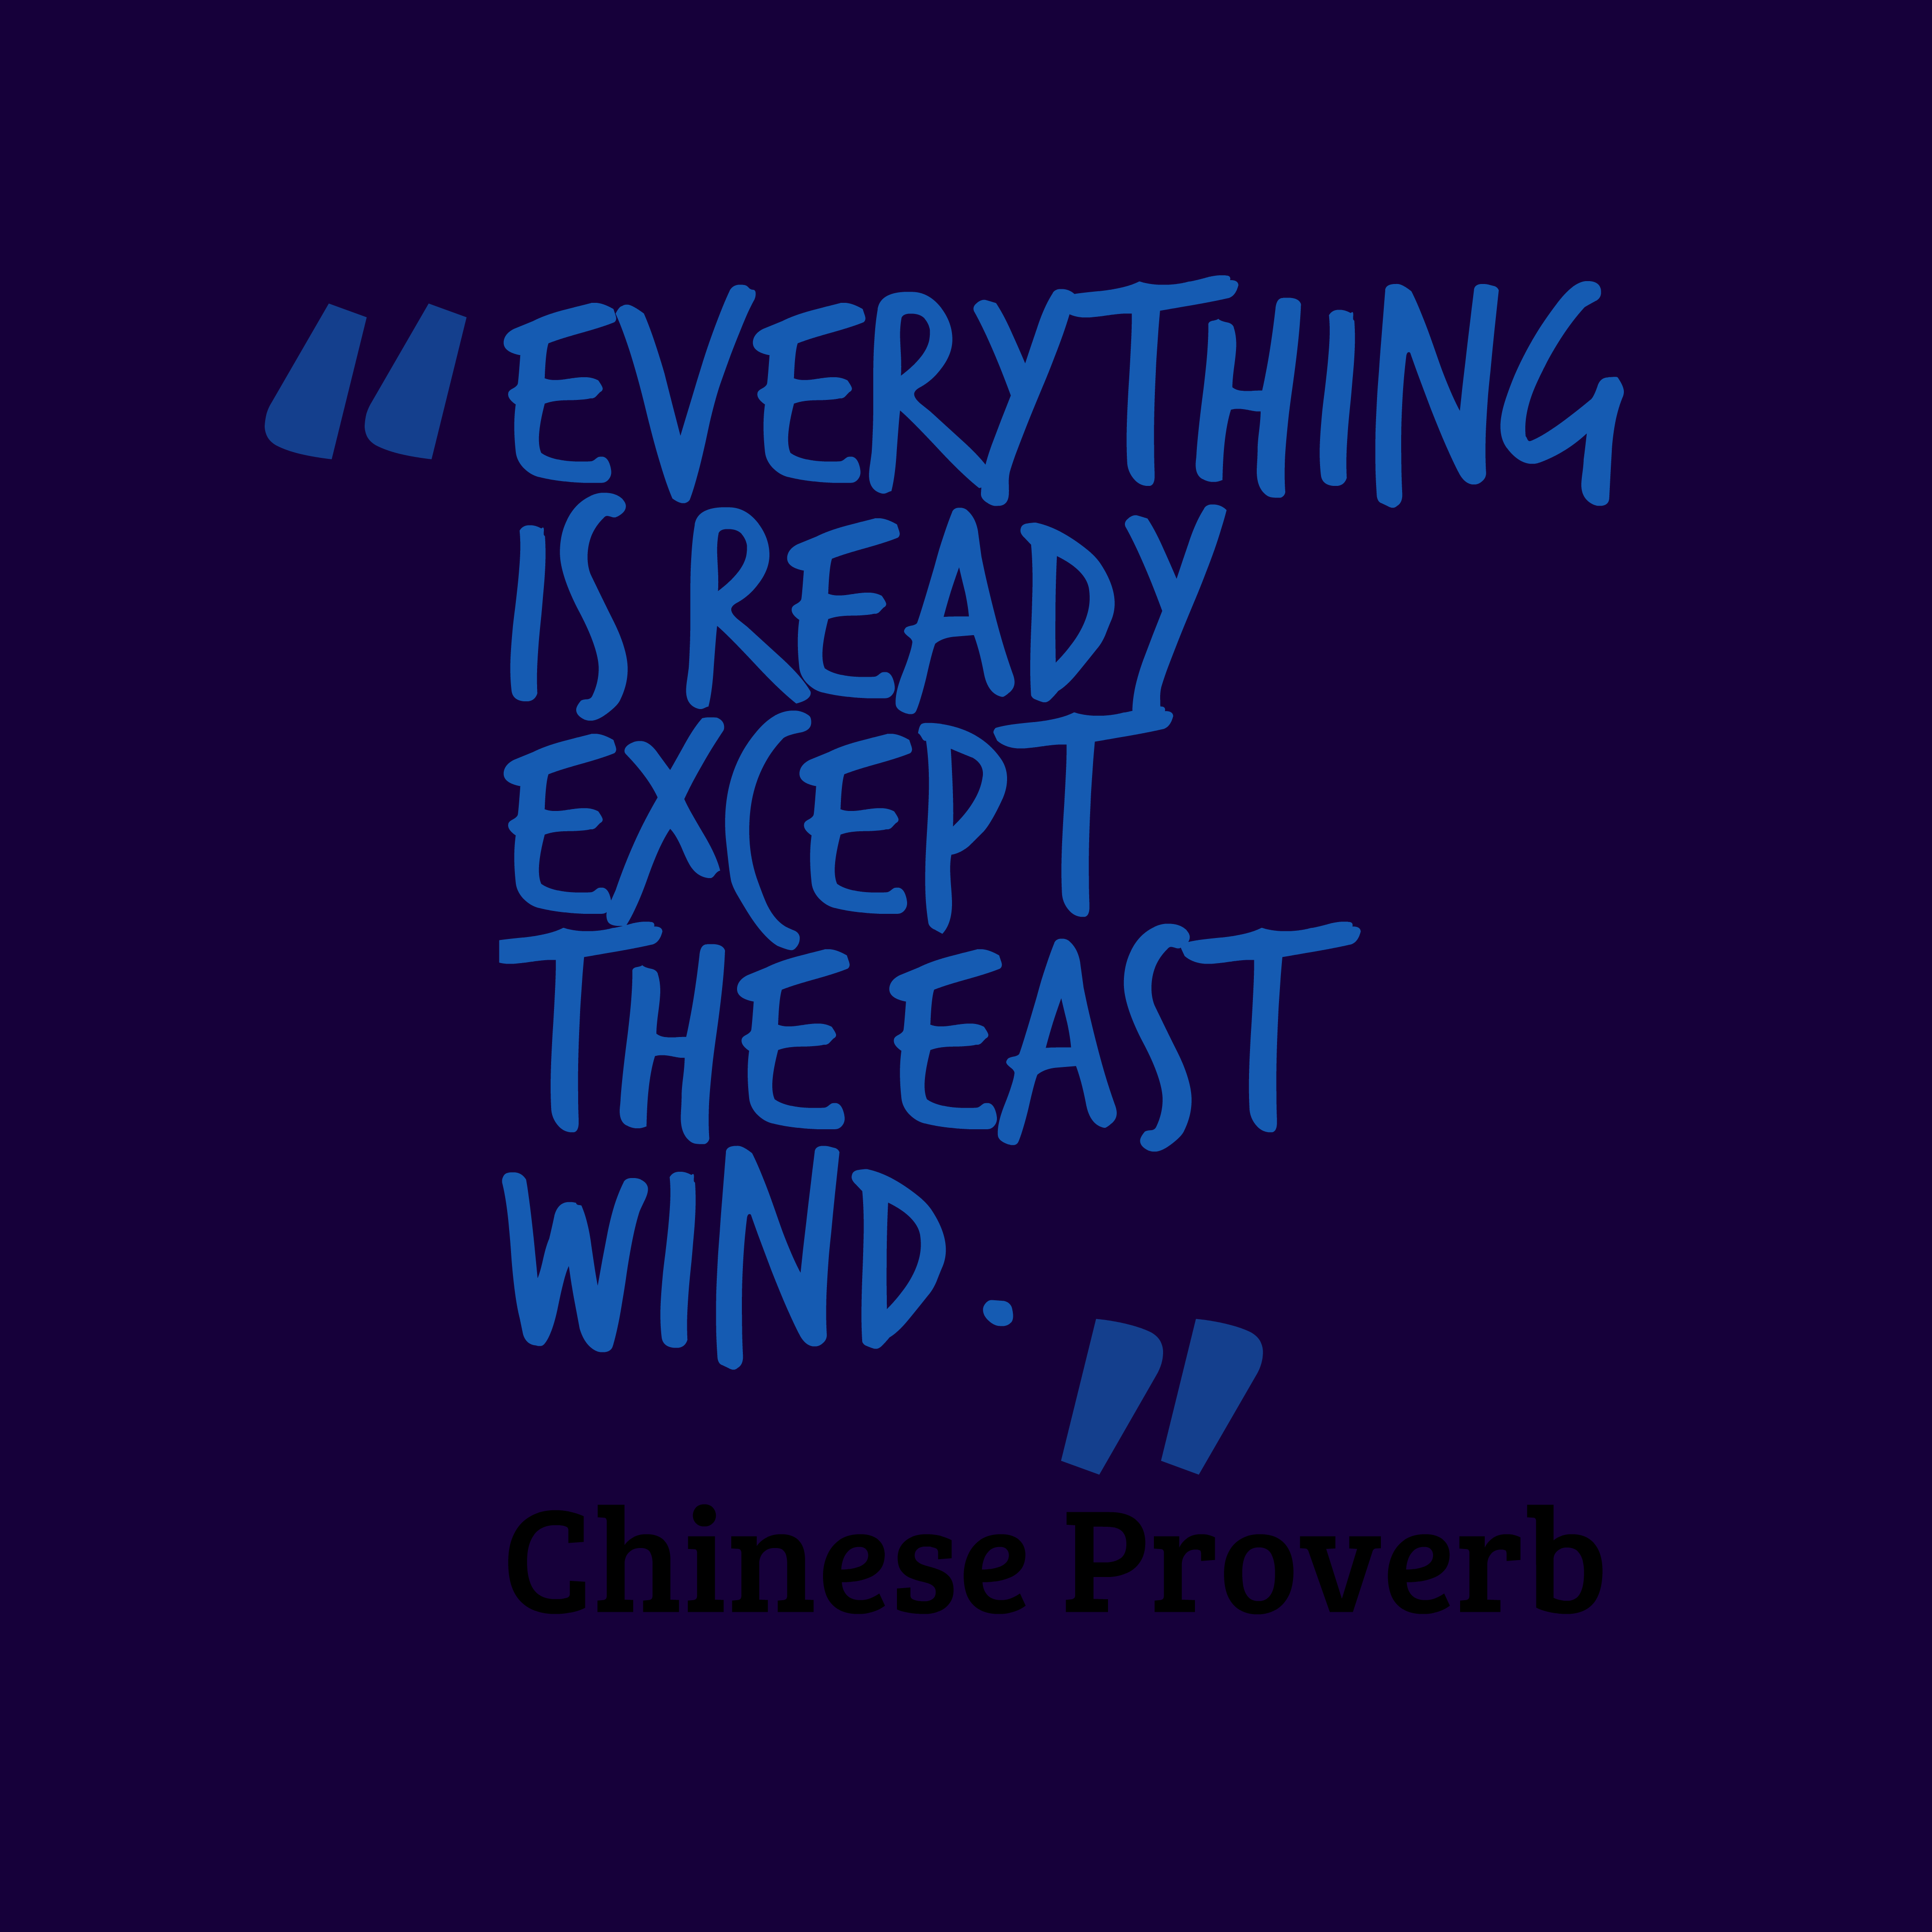 Quotes image of Everything is ready except the east wind.